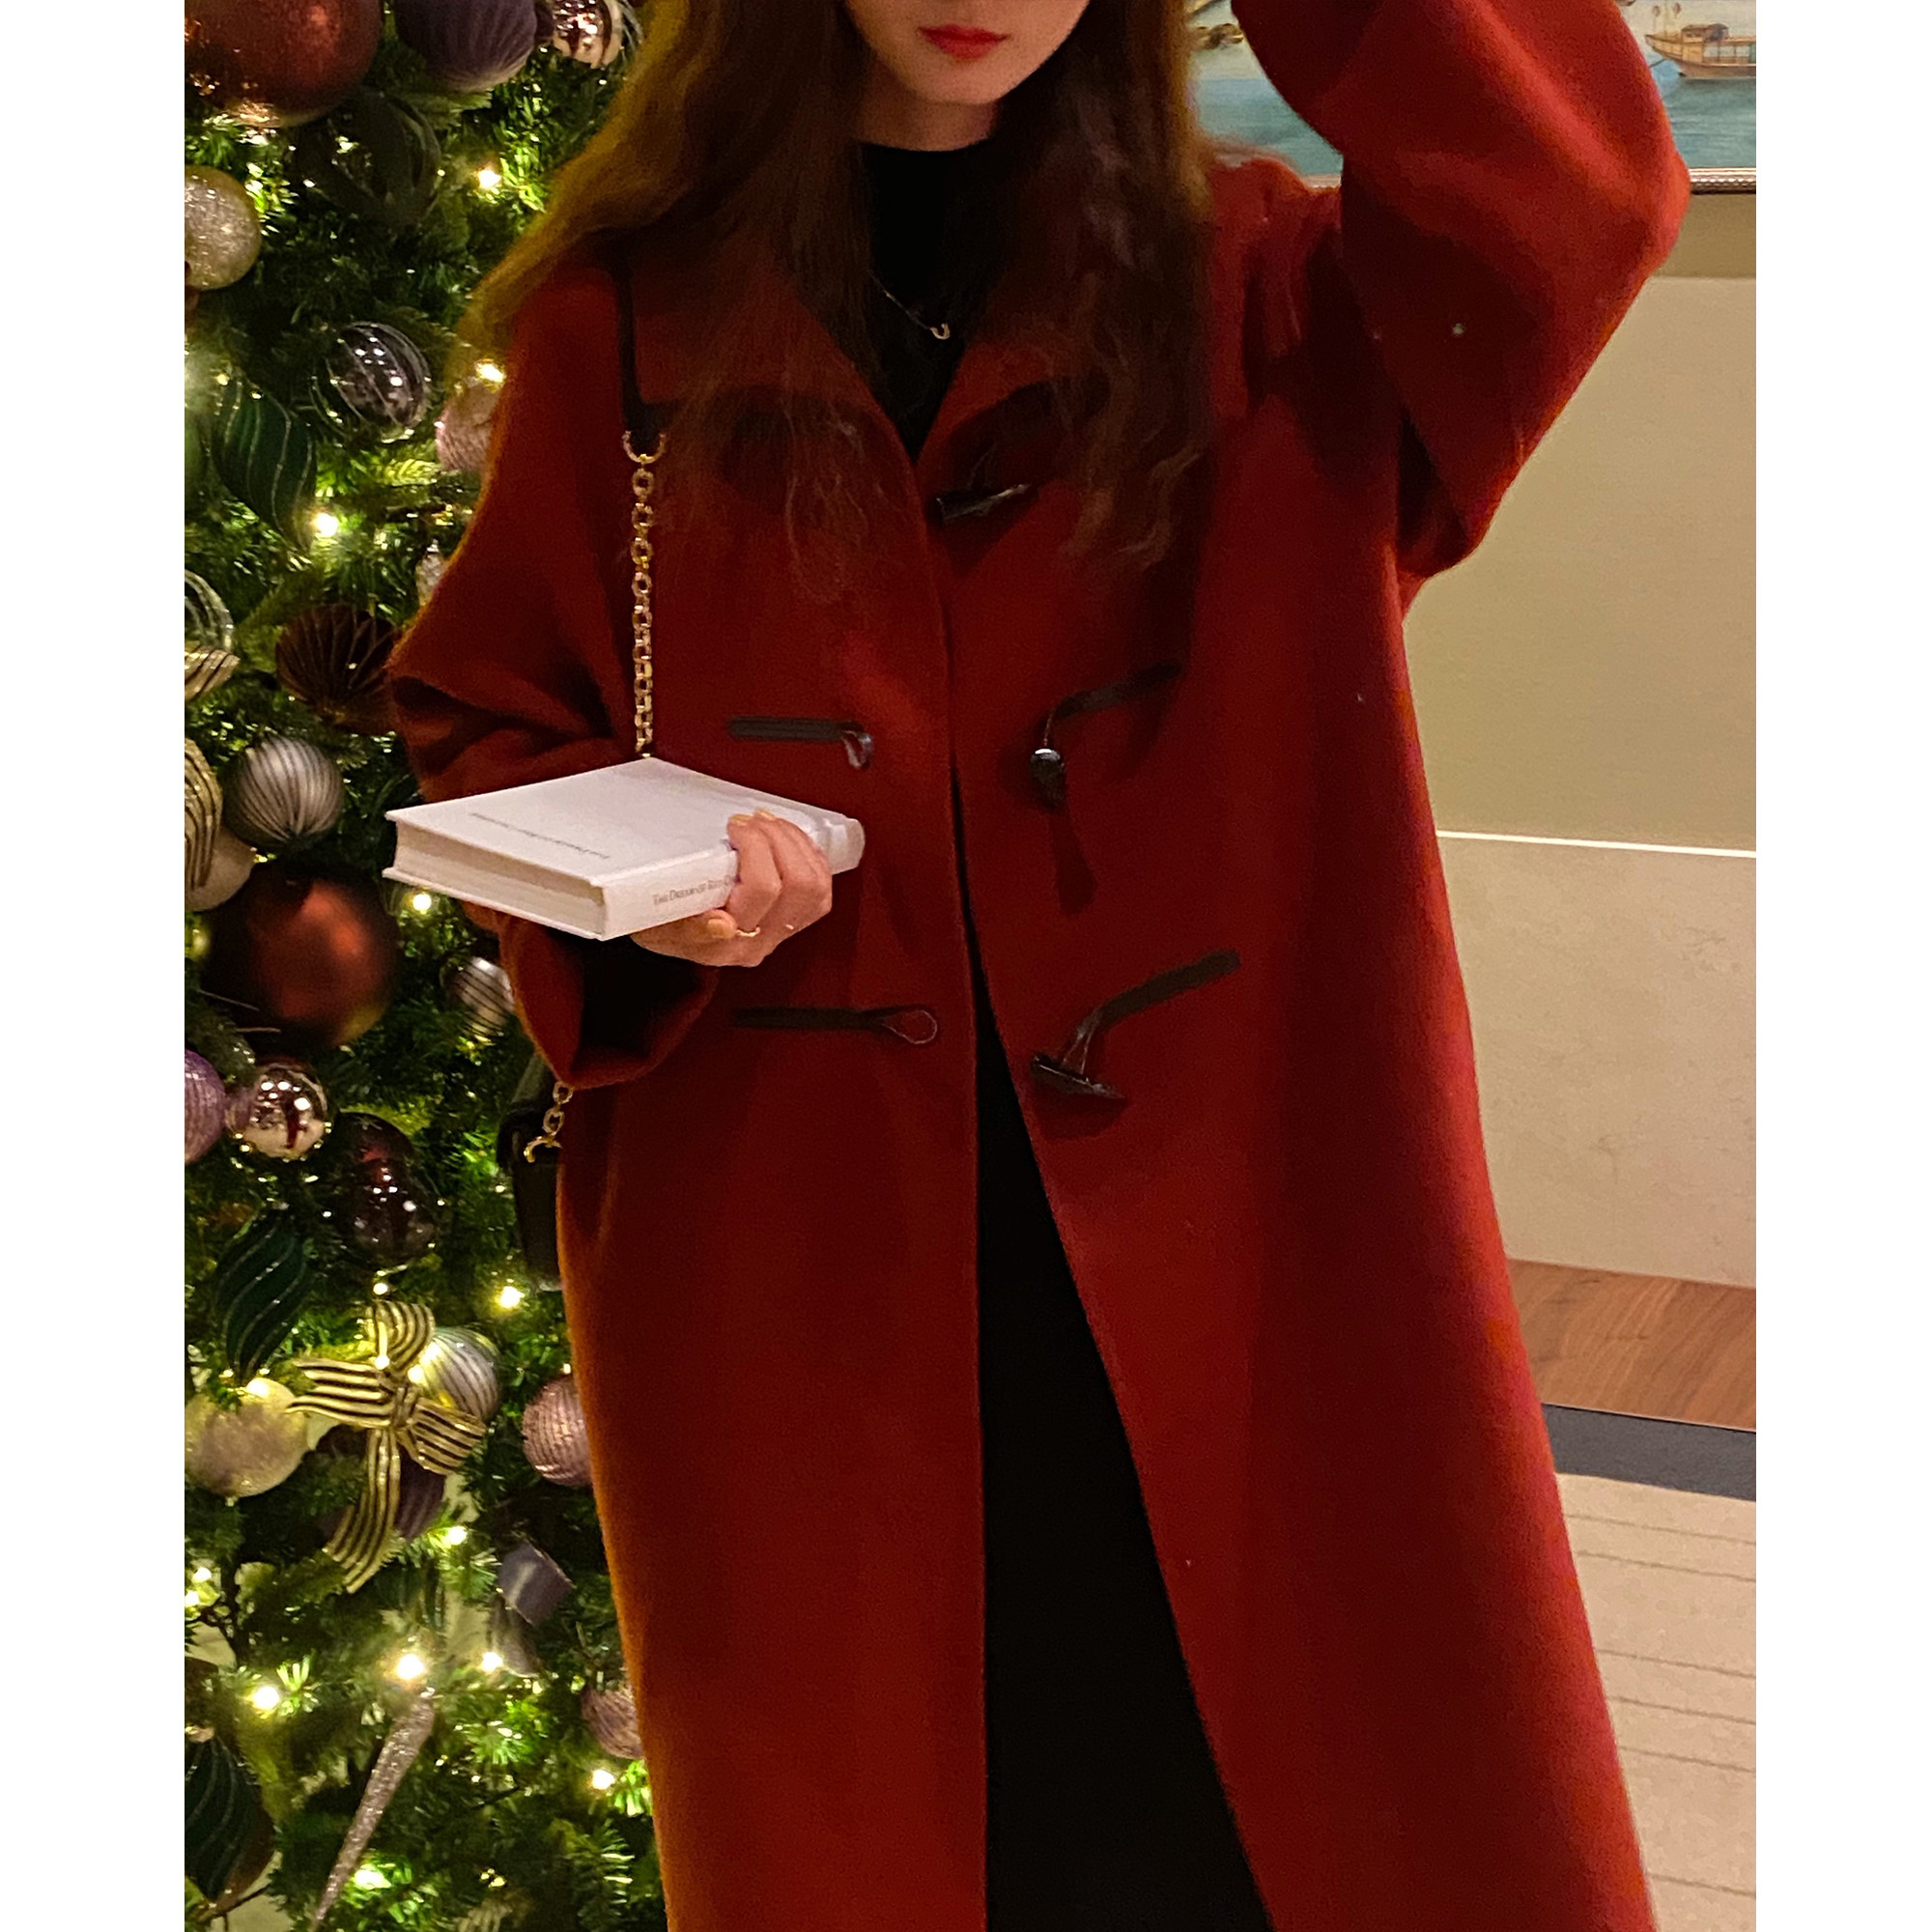 FAYEYE SHOP homemade New Years red all-wool double-sided coat womens winter mid-length version of the thick fur coat